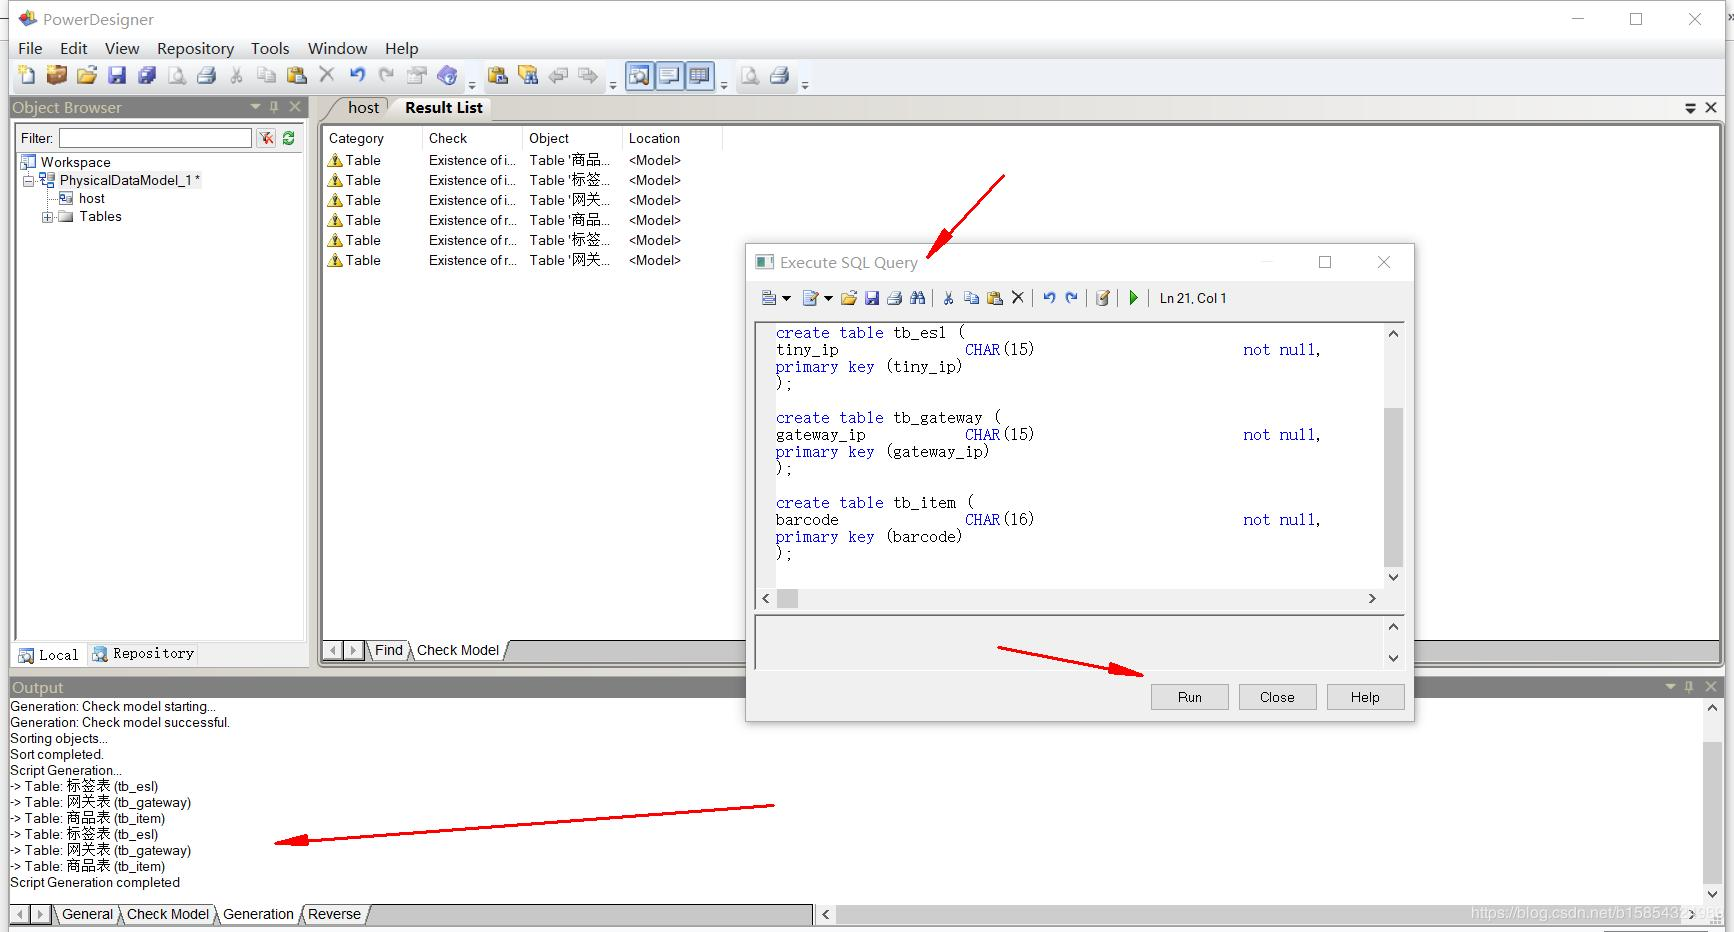 Power designer adds support for Sqlite database, can